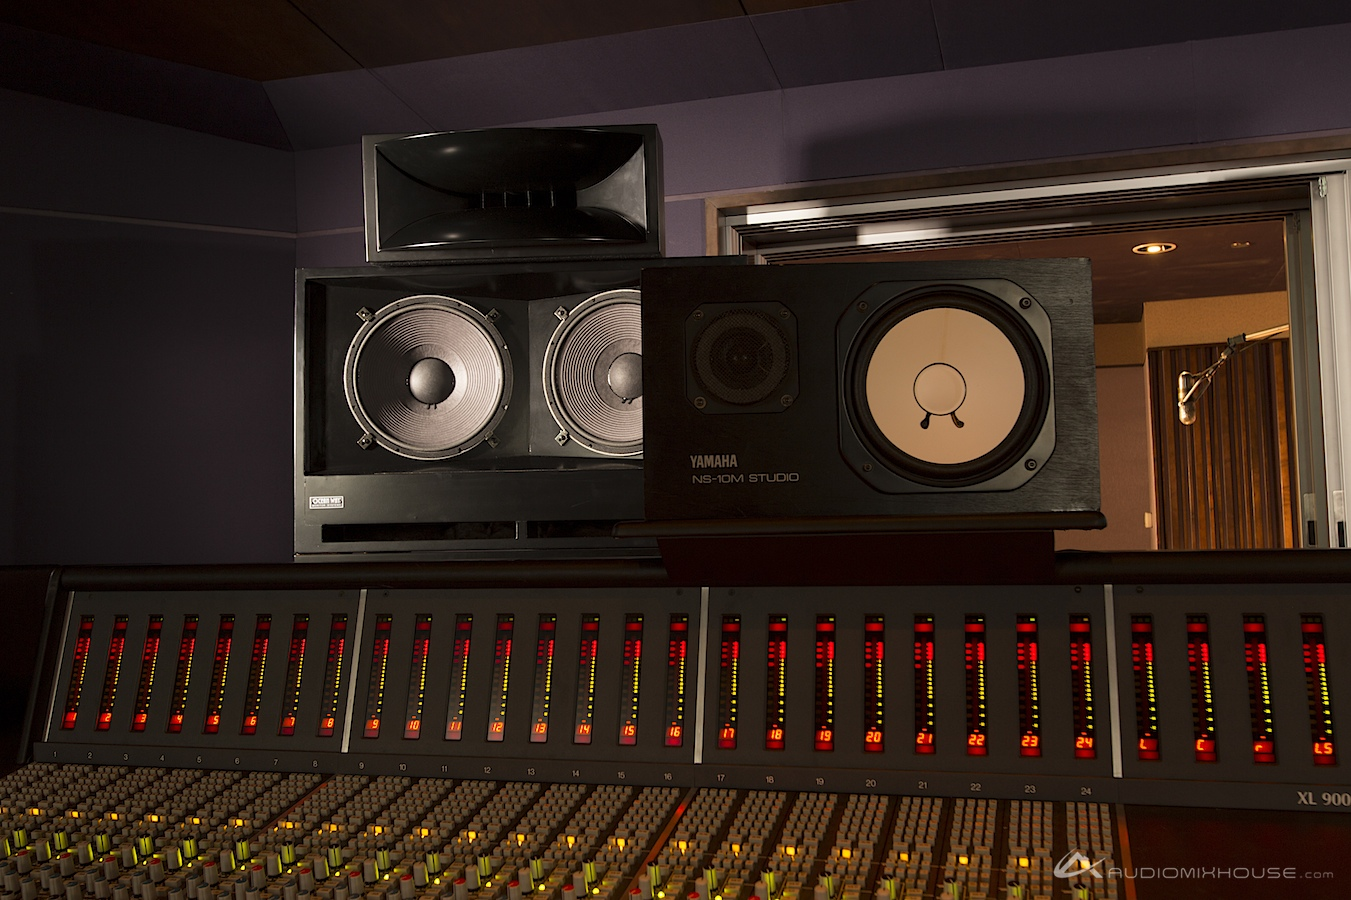 yamaha ns10. file:ocean way and yamaha ns-10 monitors at audio mix house, studio ns10